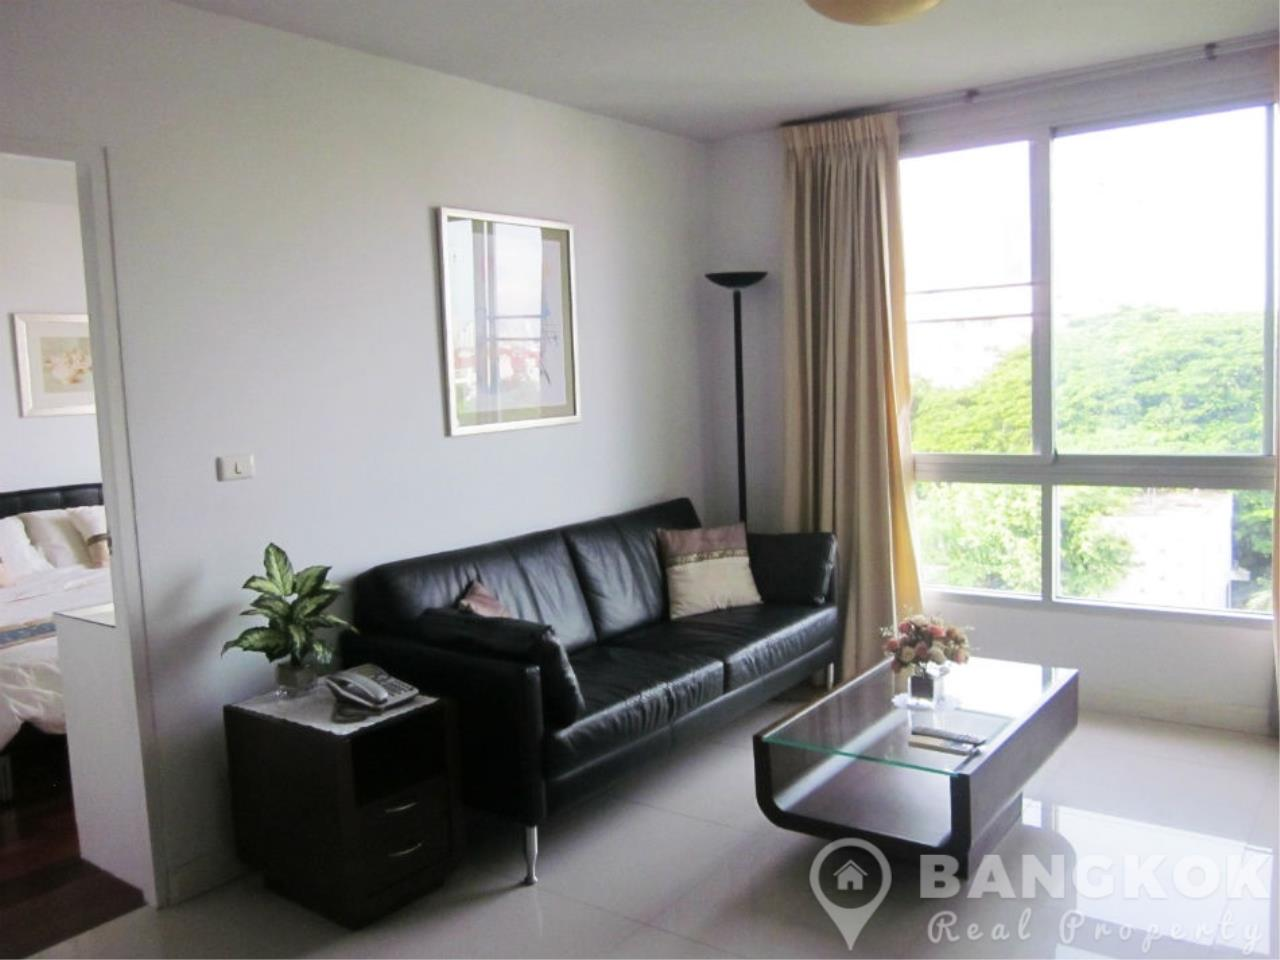 Bangkok Real Property Agency's Sathorn Plus By The Garden | Spacious High Floor 1 Bed 1 Bath 1